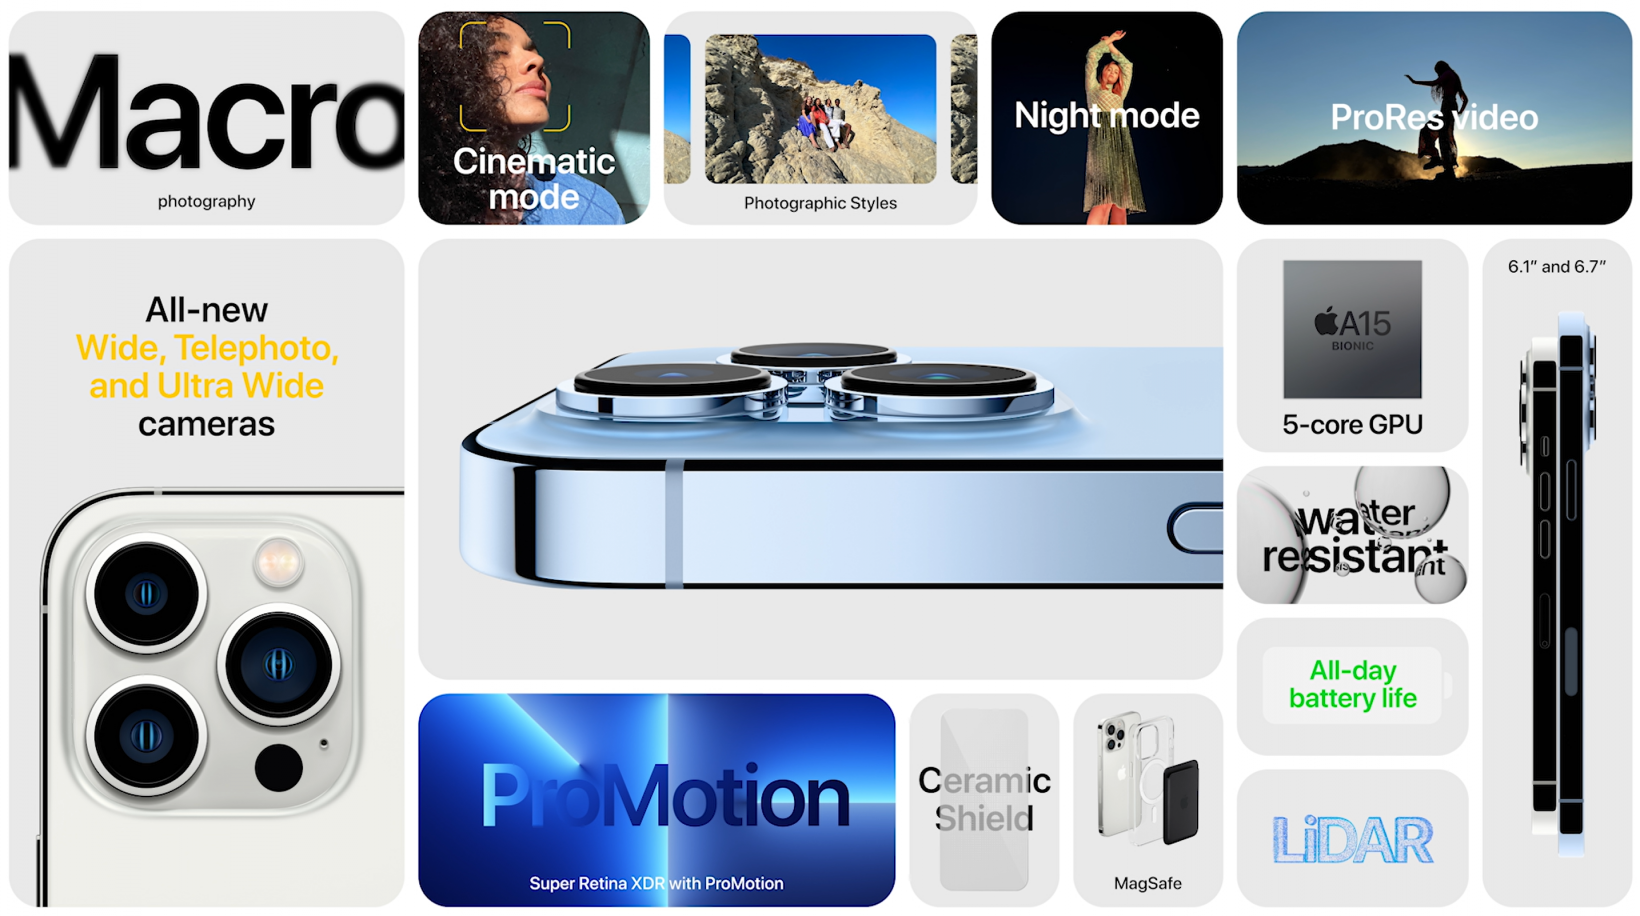 """Apple's """"California Streaming"""" event delivered on anticipated products: the iPhone 13, Apple Watch Series 7. It also announced the launch of the iPad Mini."""